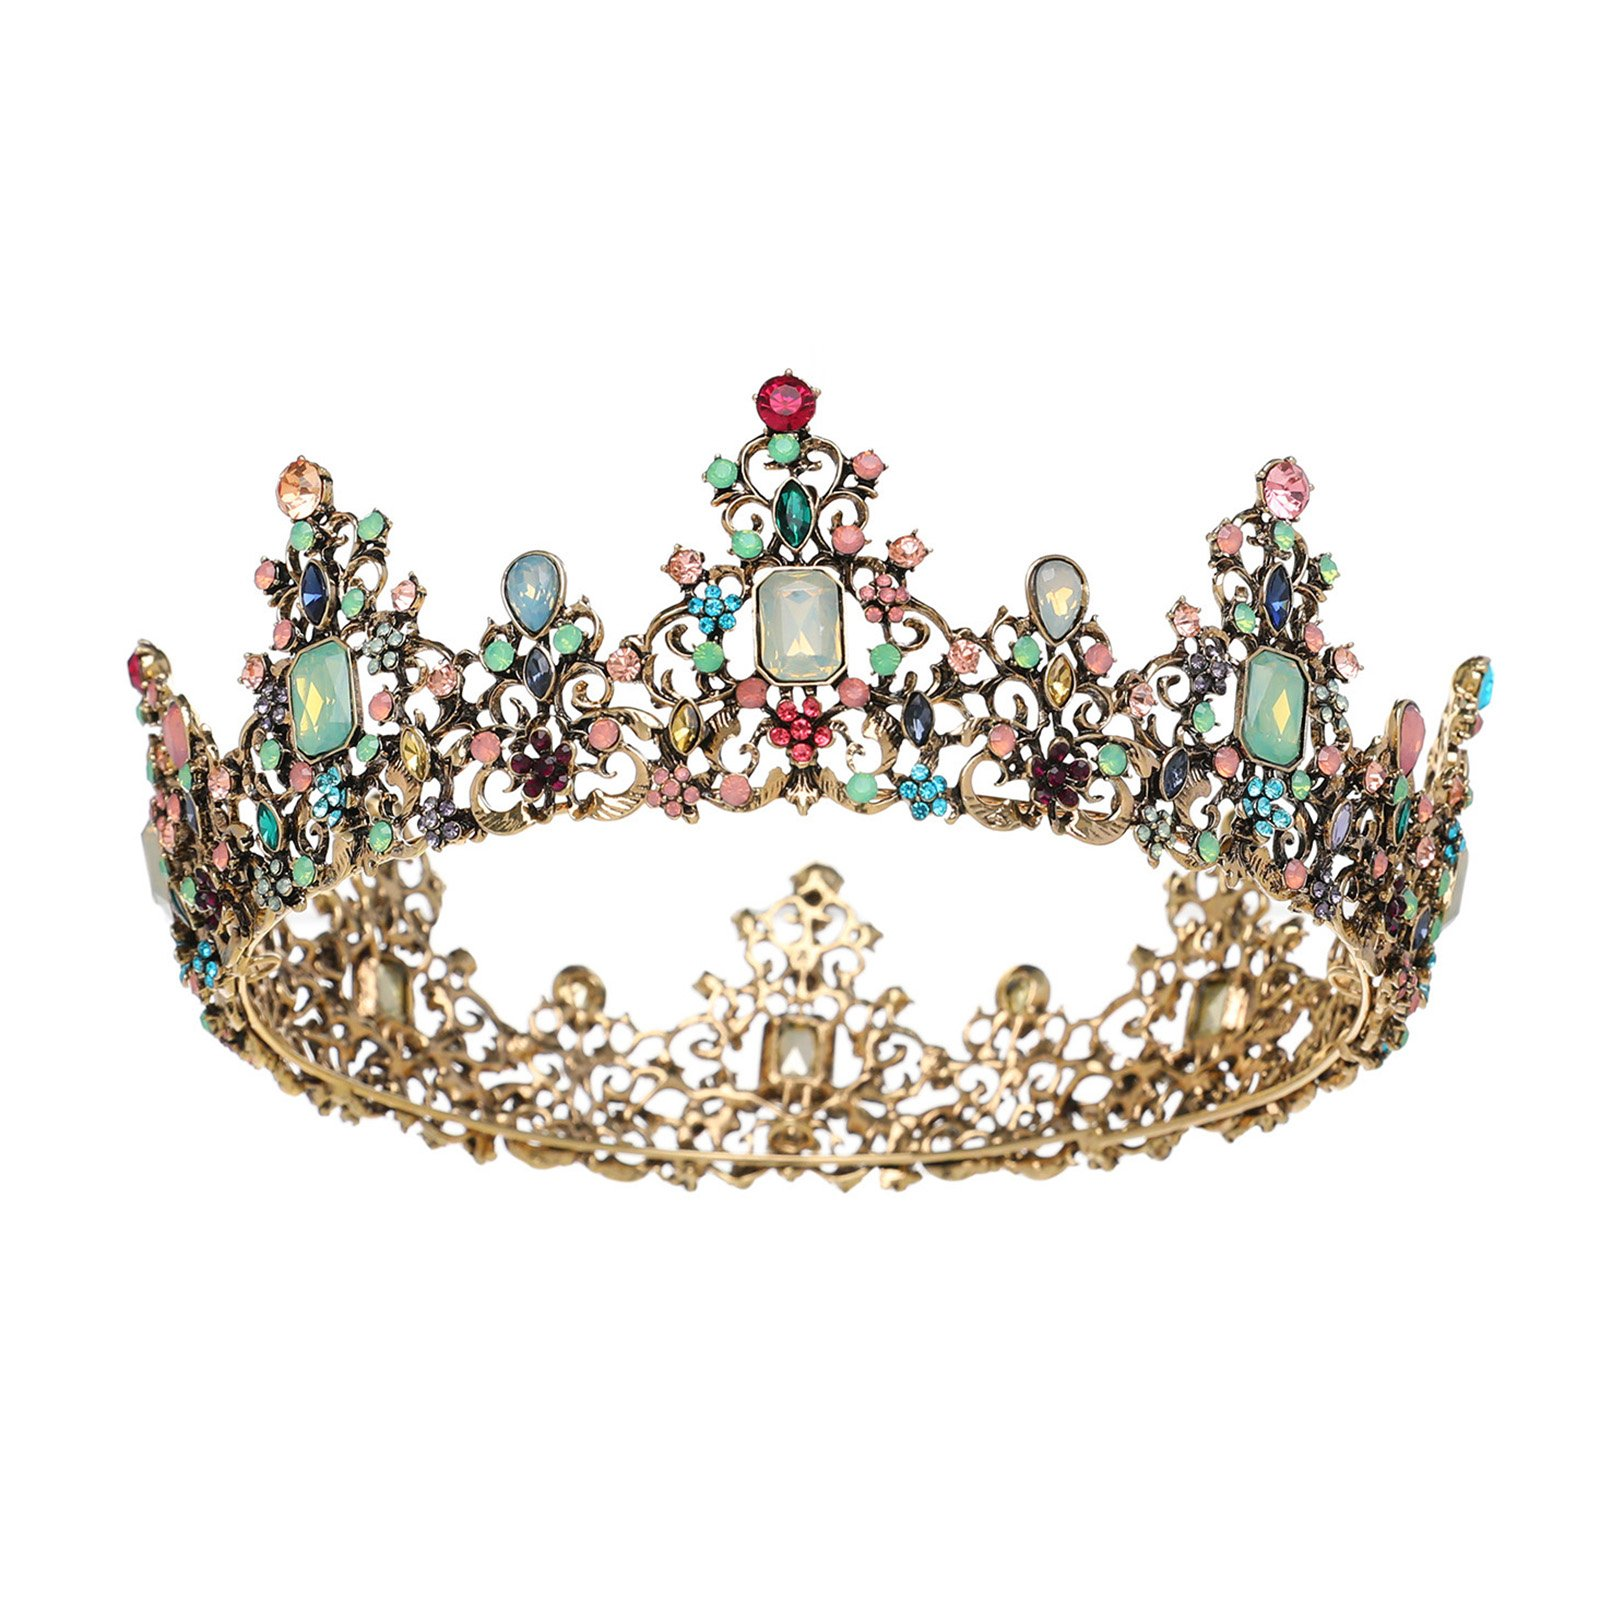 SWEETV Baroque Headpieces Round Queen Crown Jeweled Tiara Party Hats Hair Decorations with Gemstones